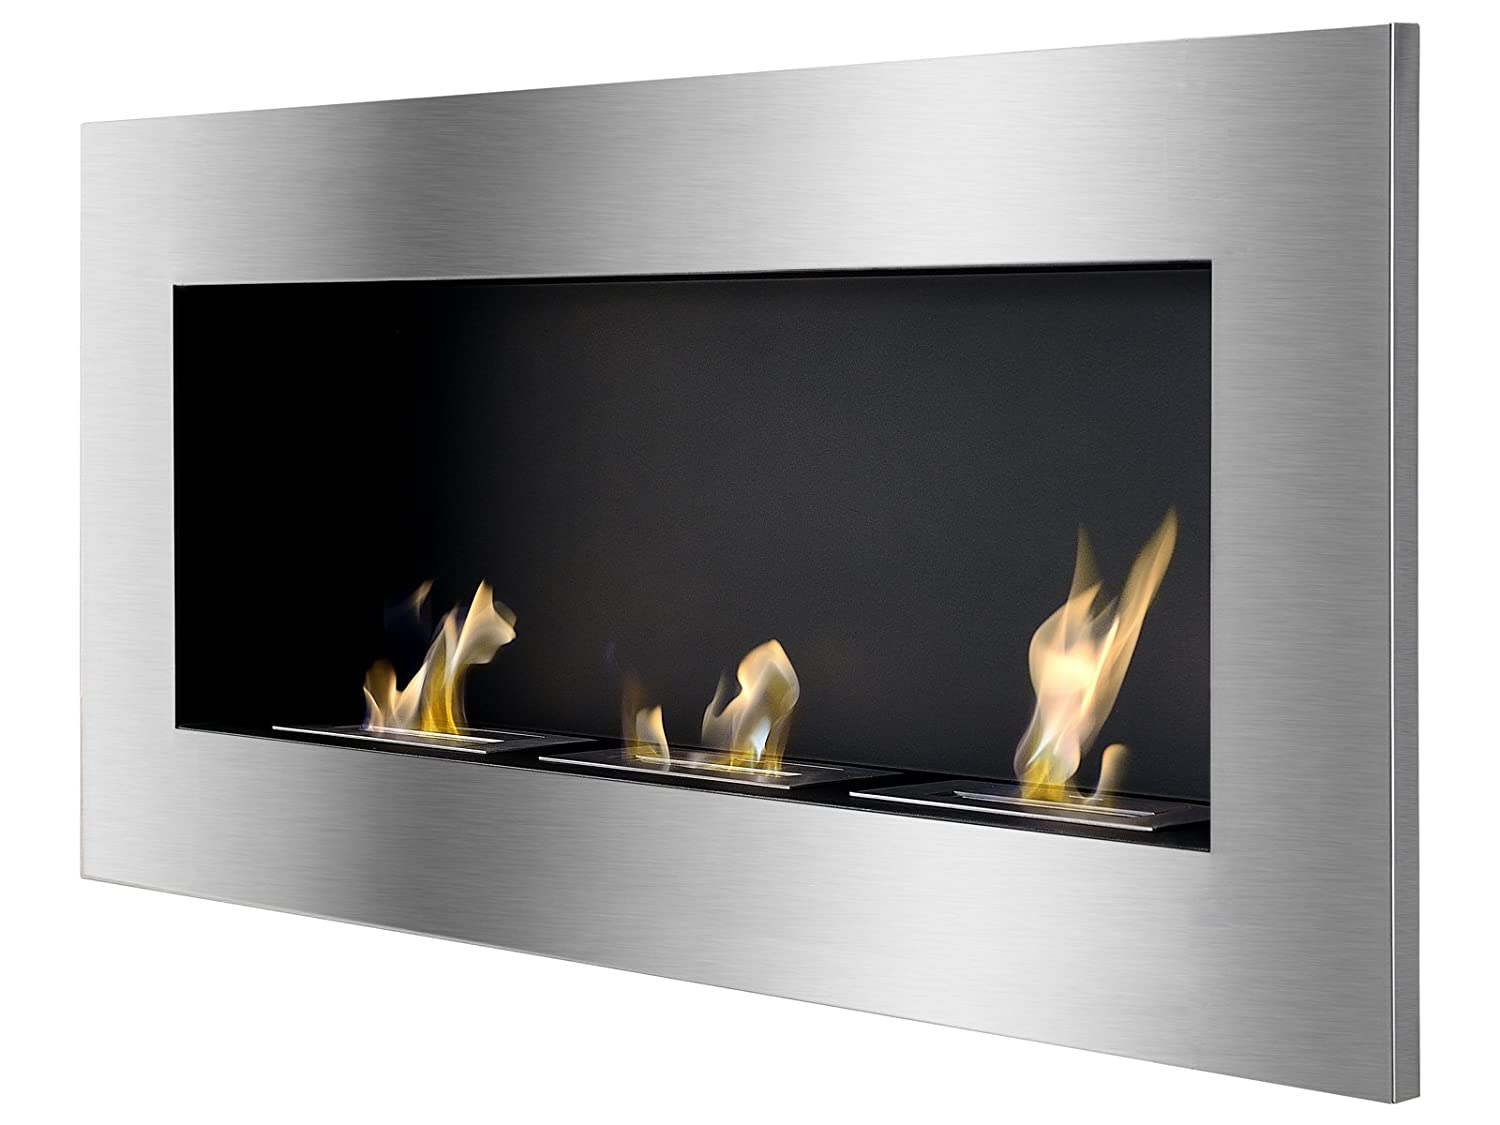 Amazoncom Ignis Ventless Bio Ethanol Fireplace Optimum Home Kitchen